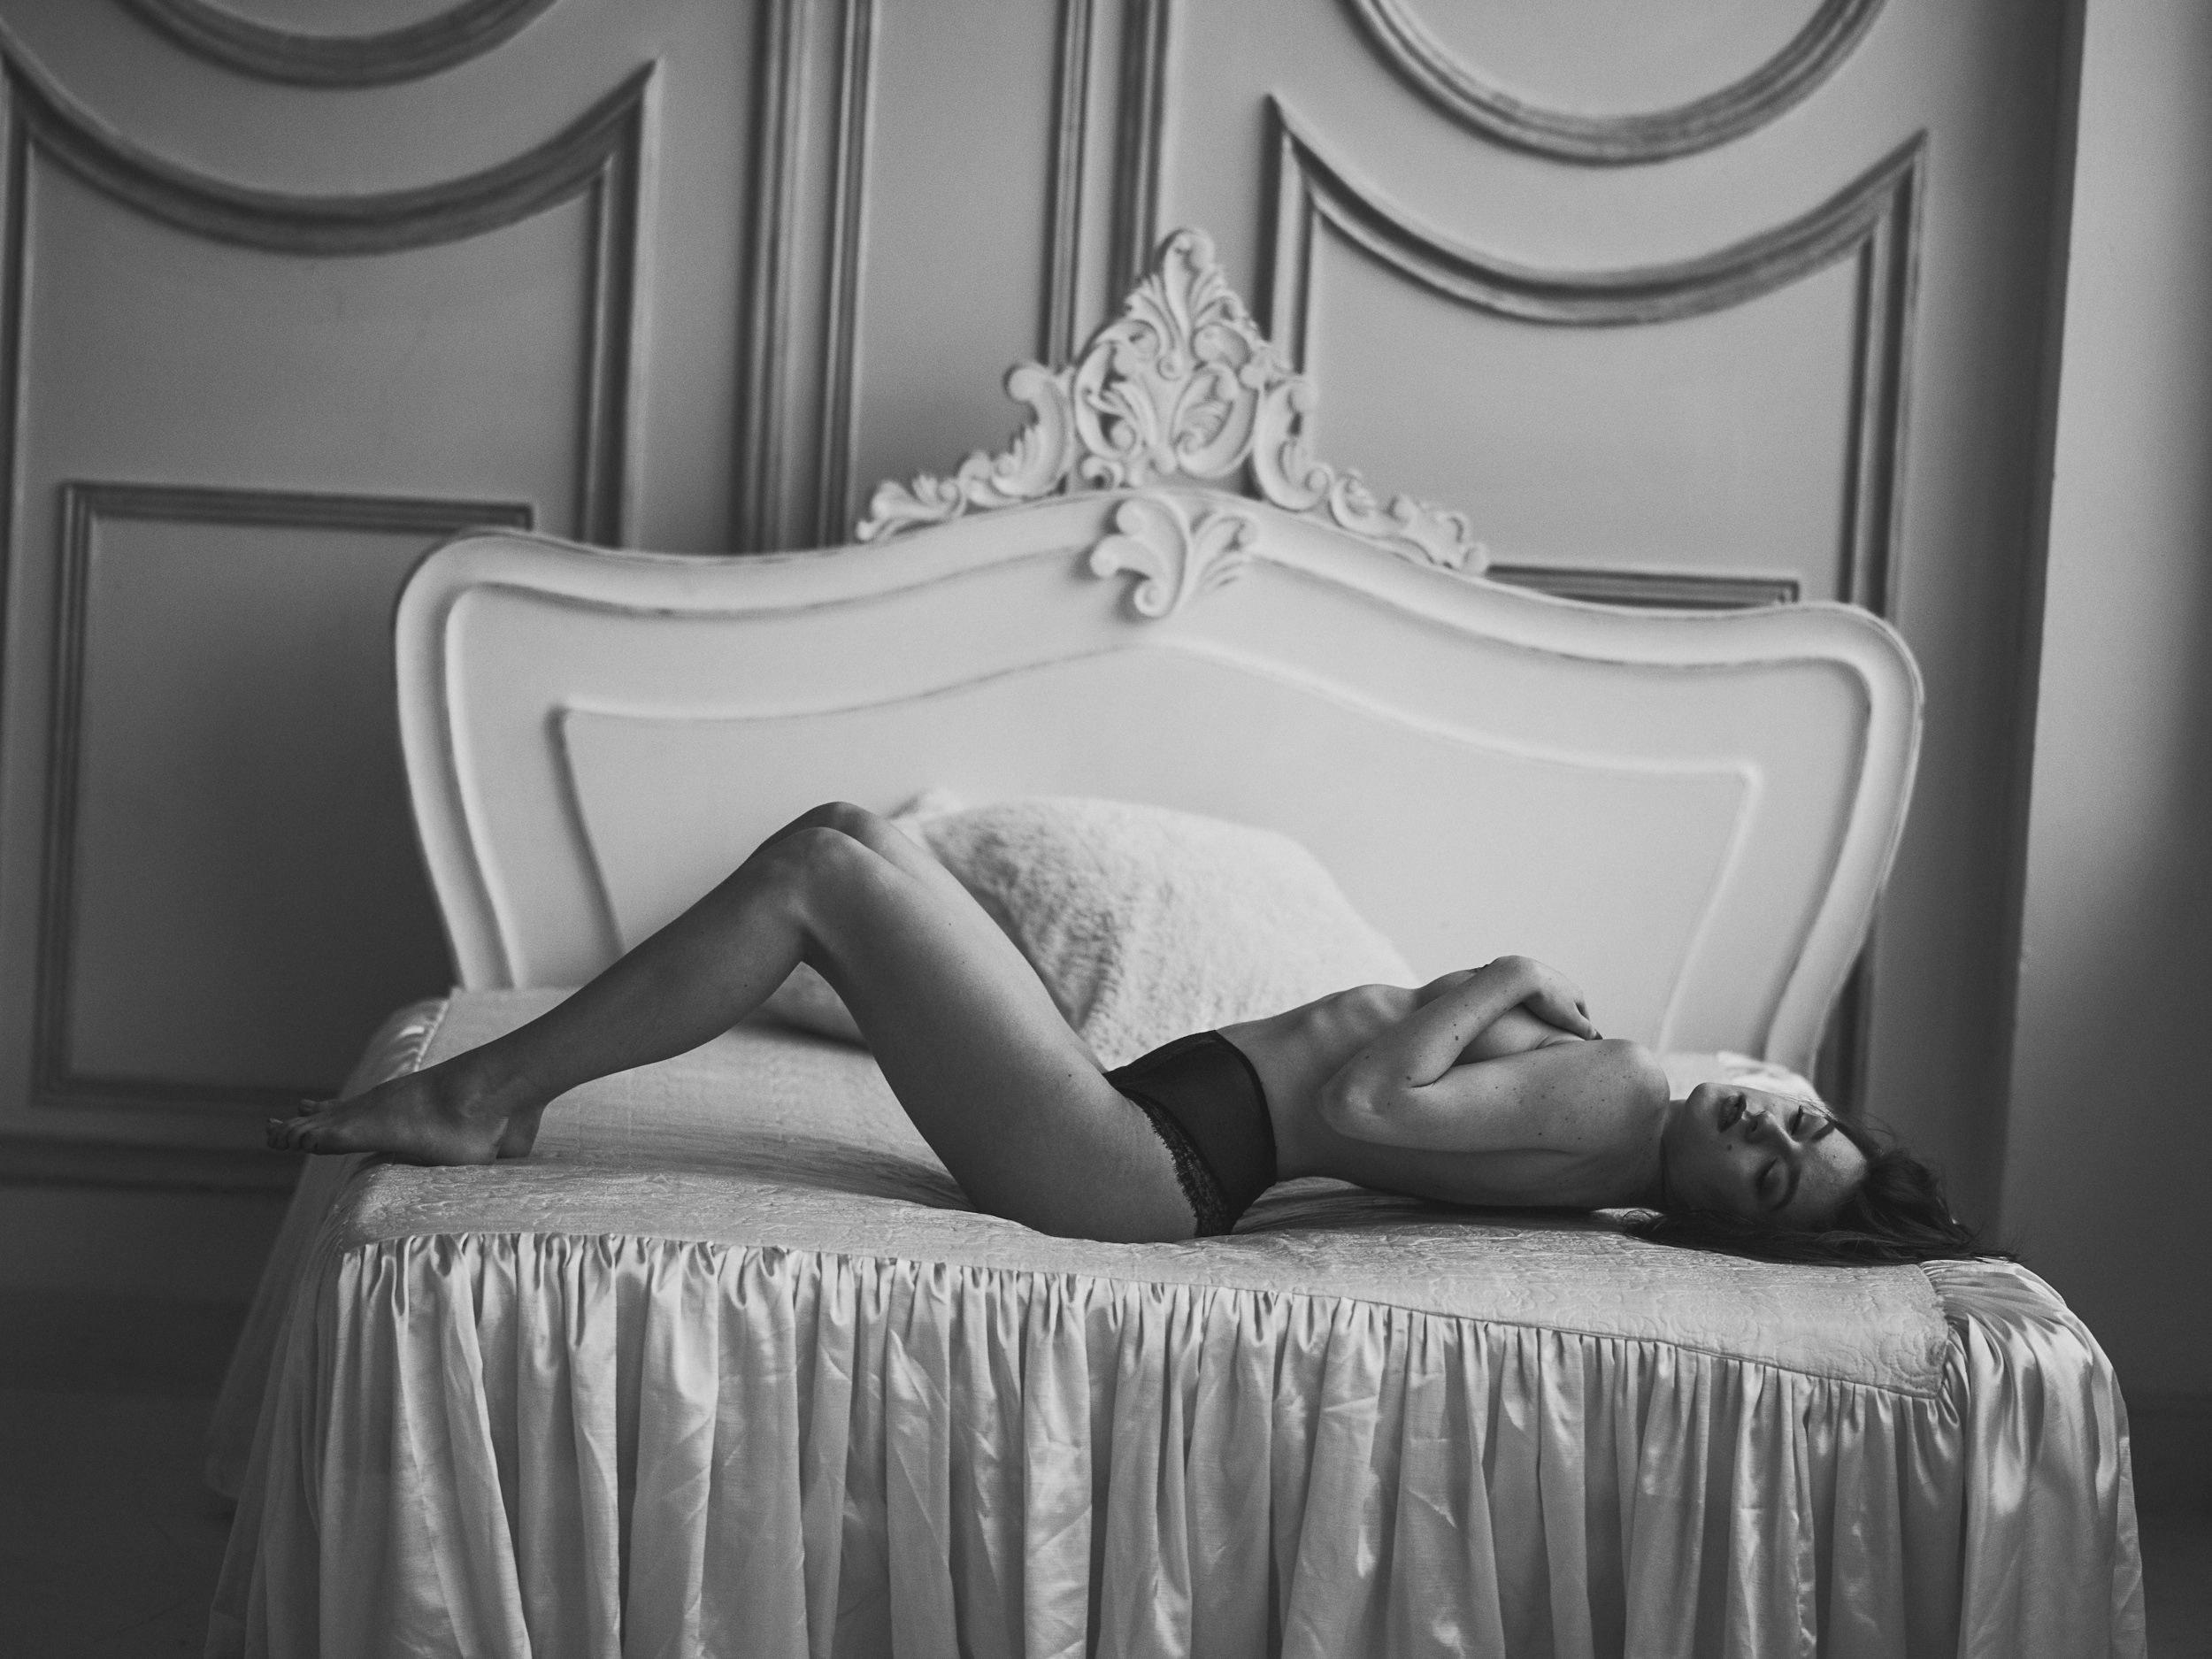 nude art photography bed